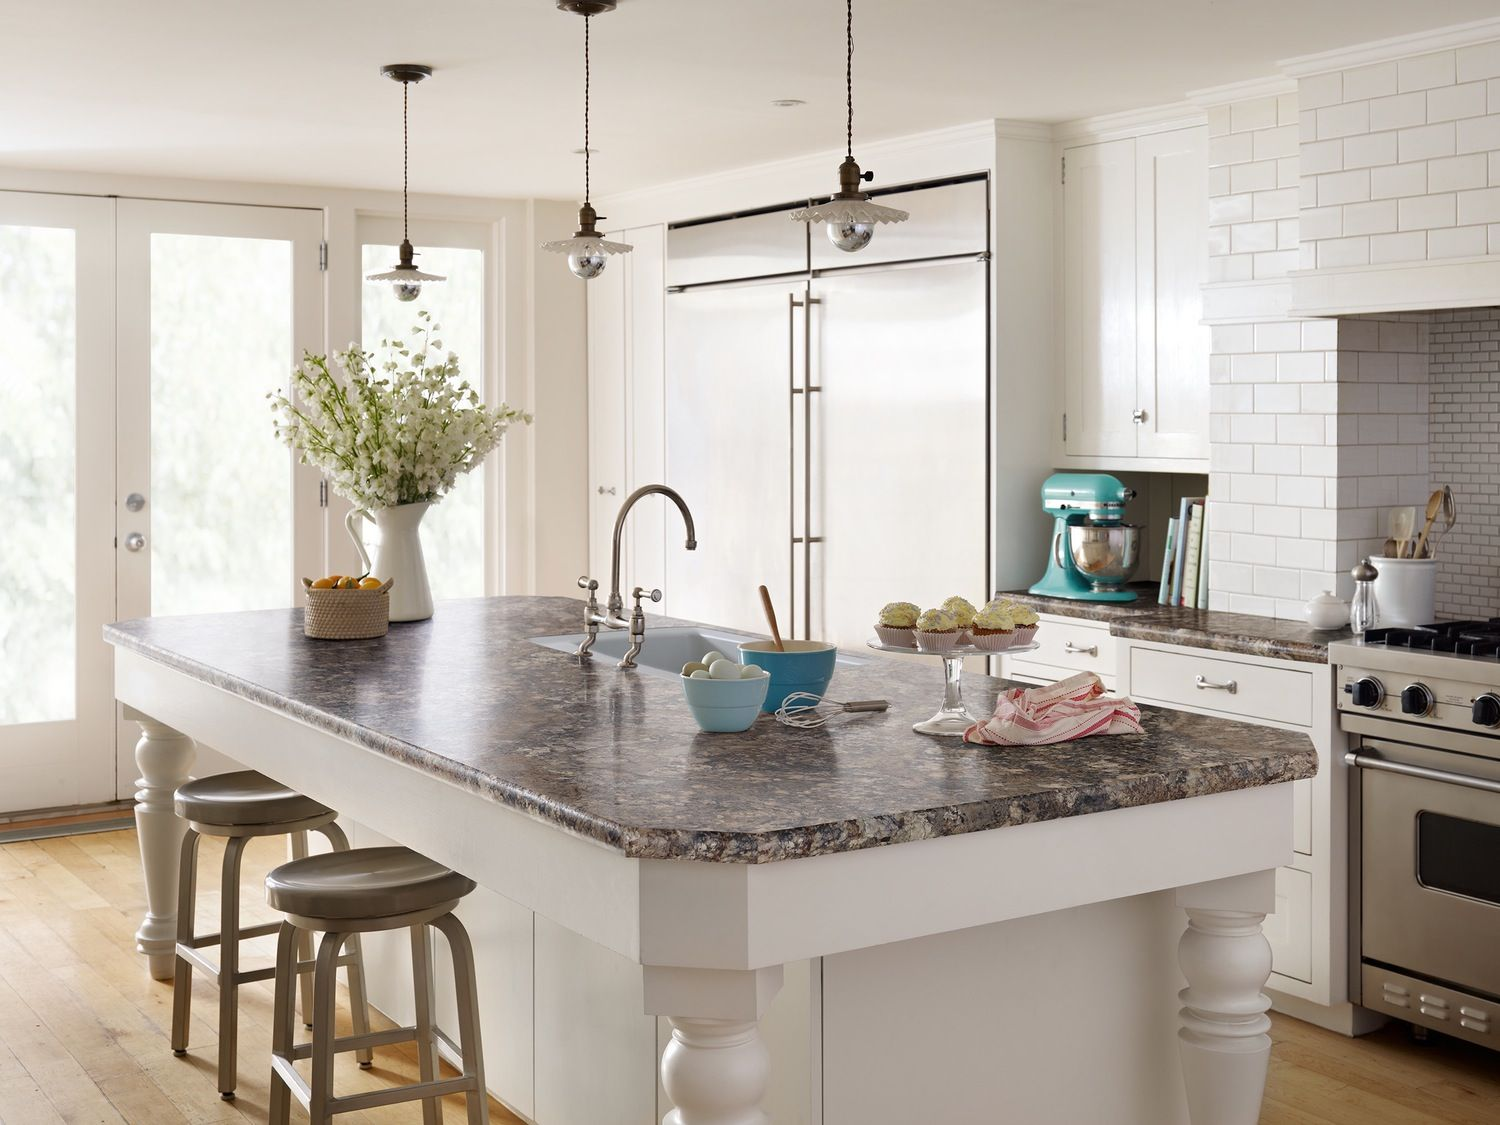 How High Should My Countertops Be Kitchen Island With Sink Replacing Kitchen Countertops Kitchen Renovation